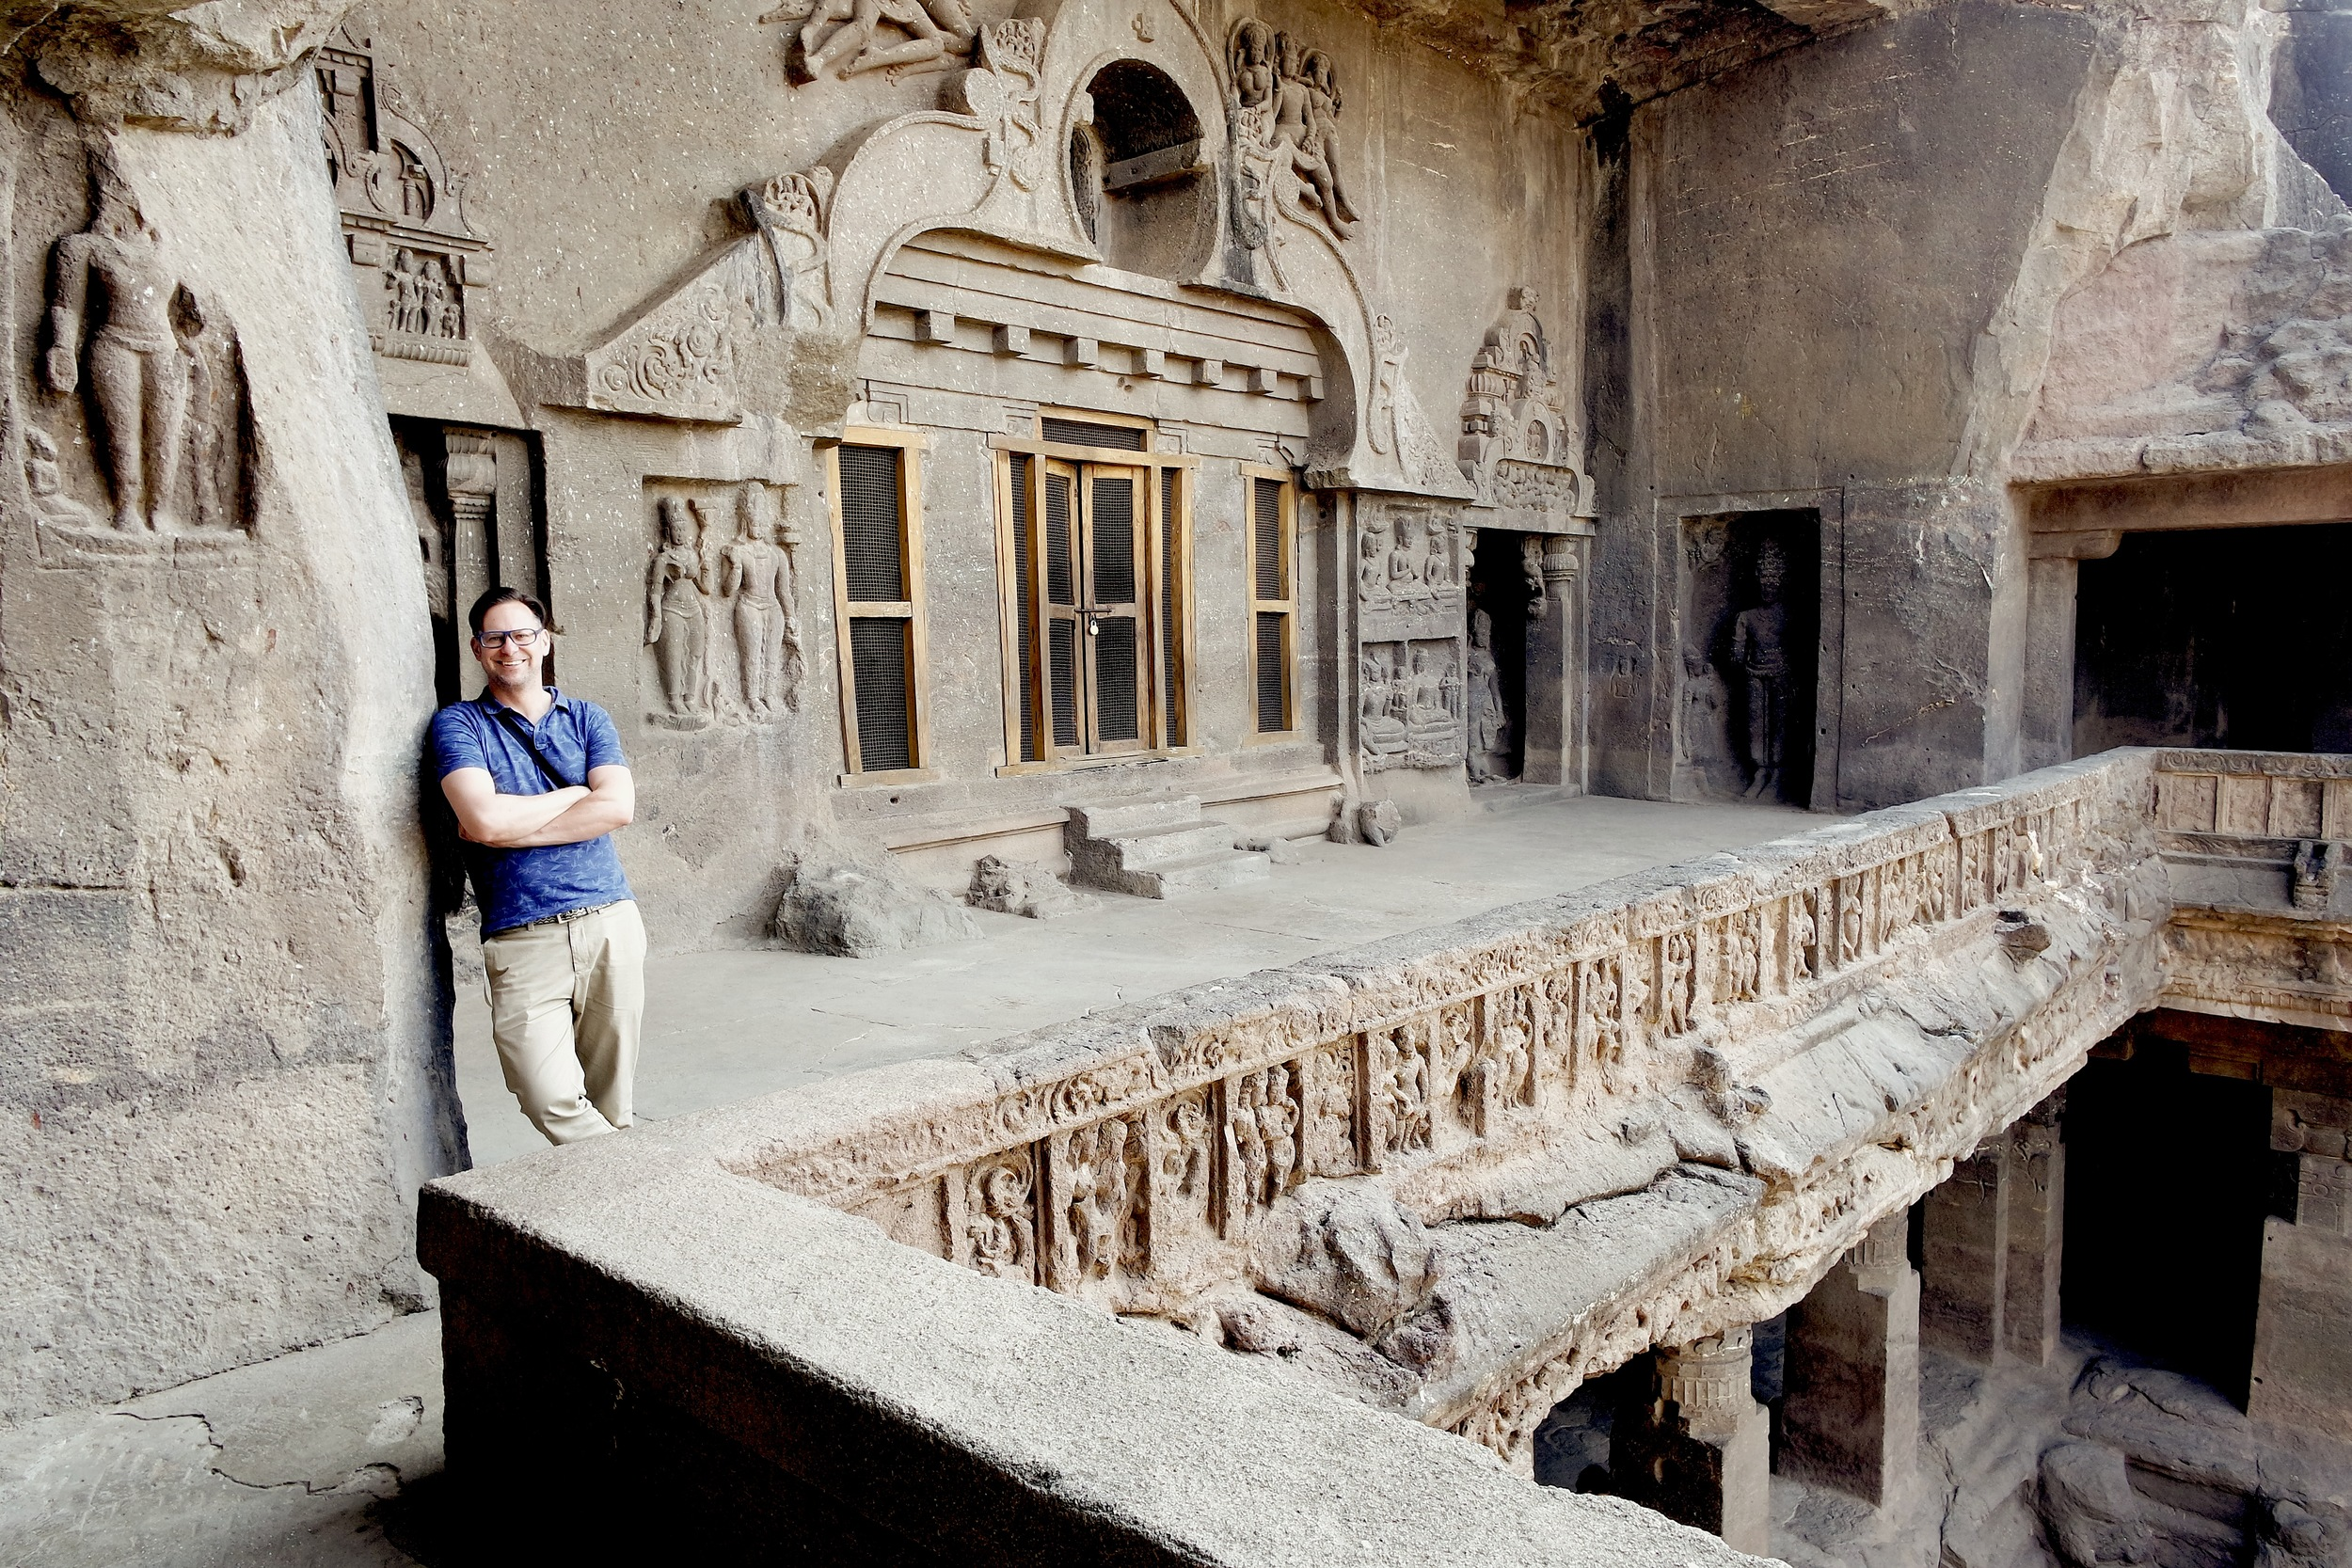 Duke on the what's called the verandah, on the upper story of Cave 32 at Ellora